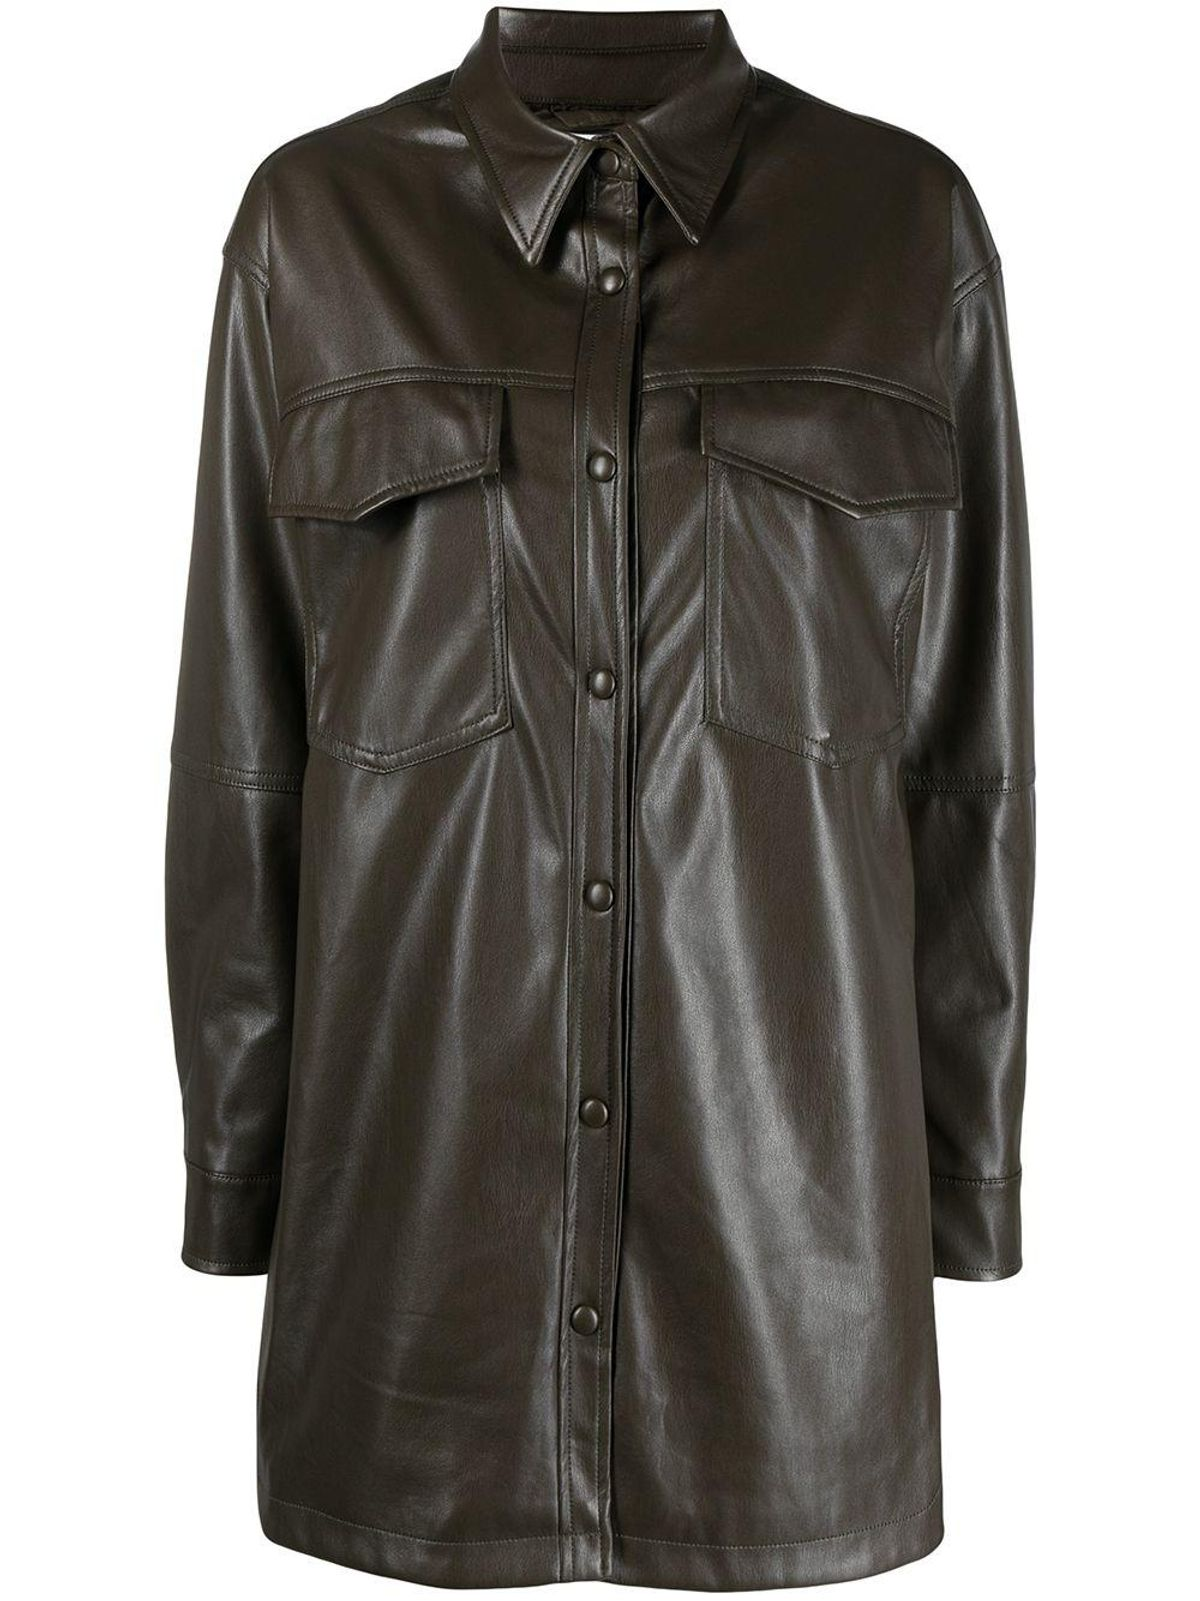 Riley Buttoned-Up Shirt Jacket